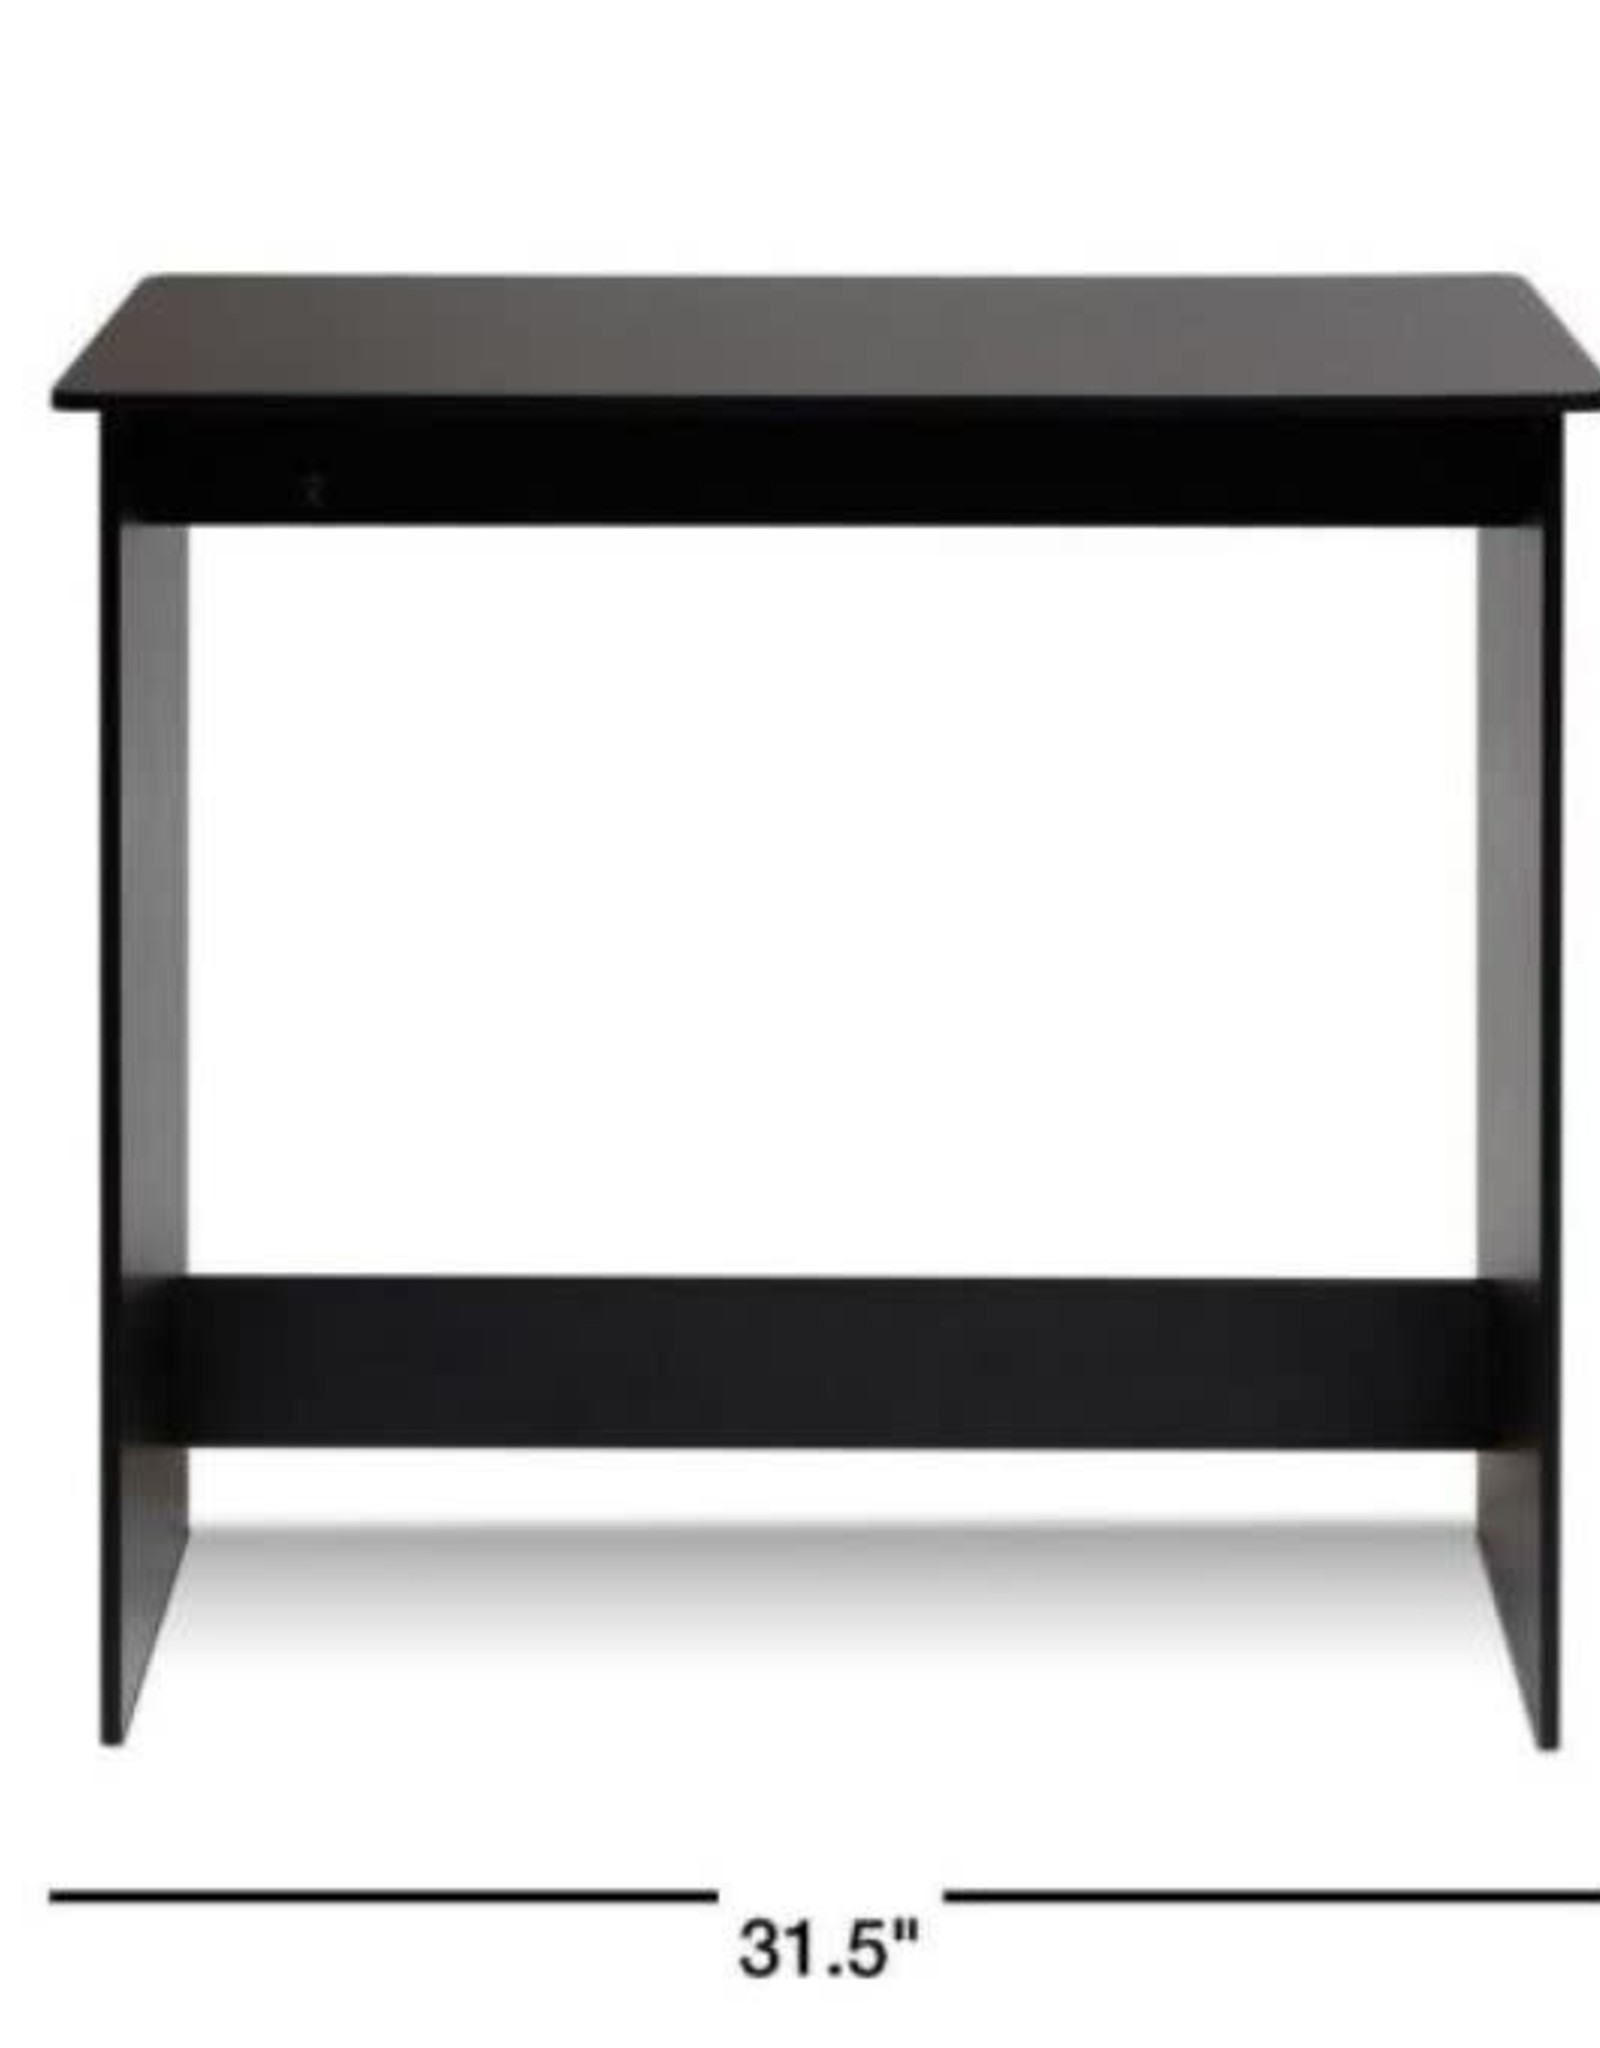 Furrino 32 in. Rectangular Espresso Writing Desk with Solid Wood Material